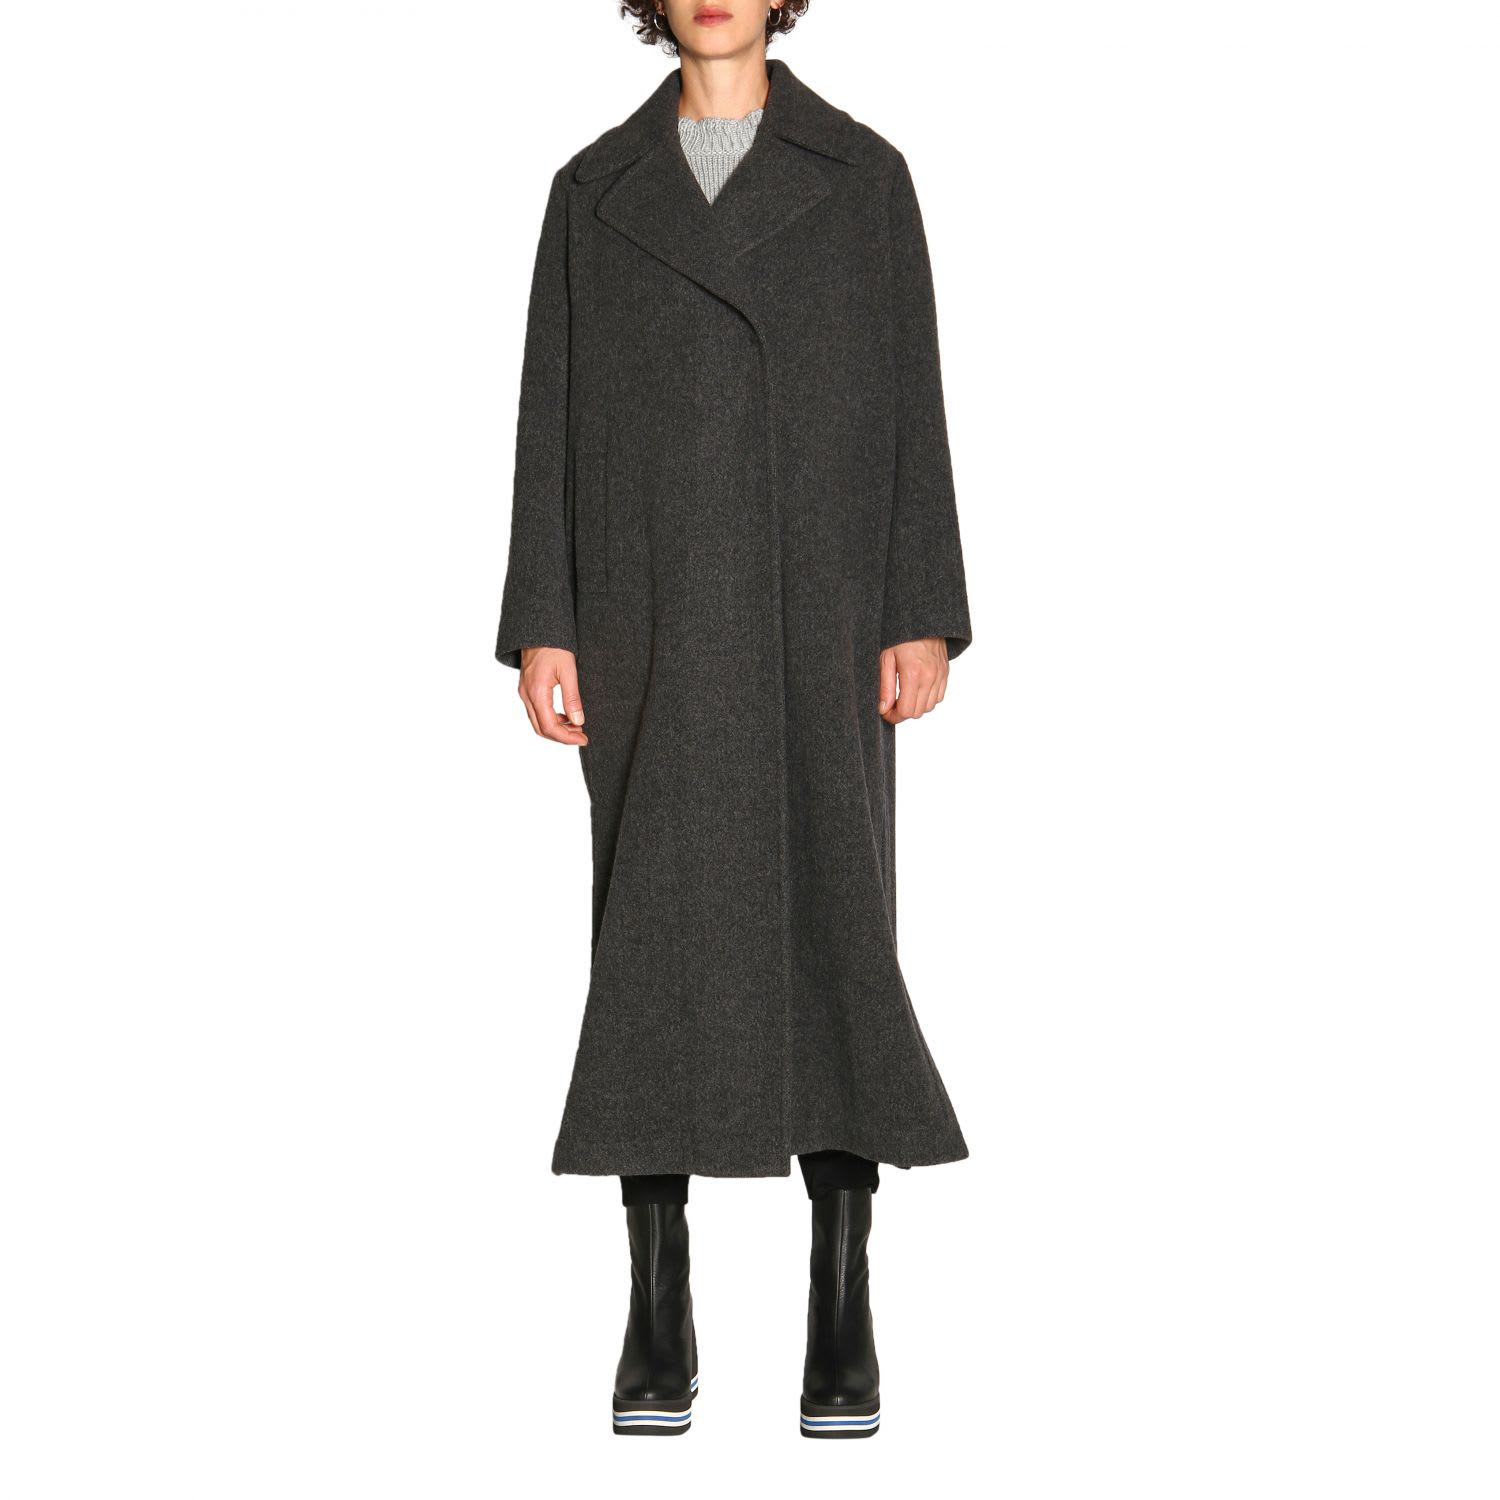 Photo of  Palto Coat Coat Women Palto- shop Paltò jackets online sales